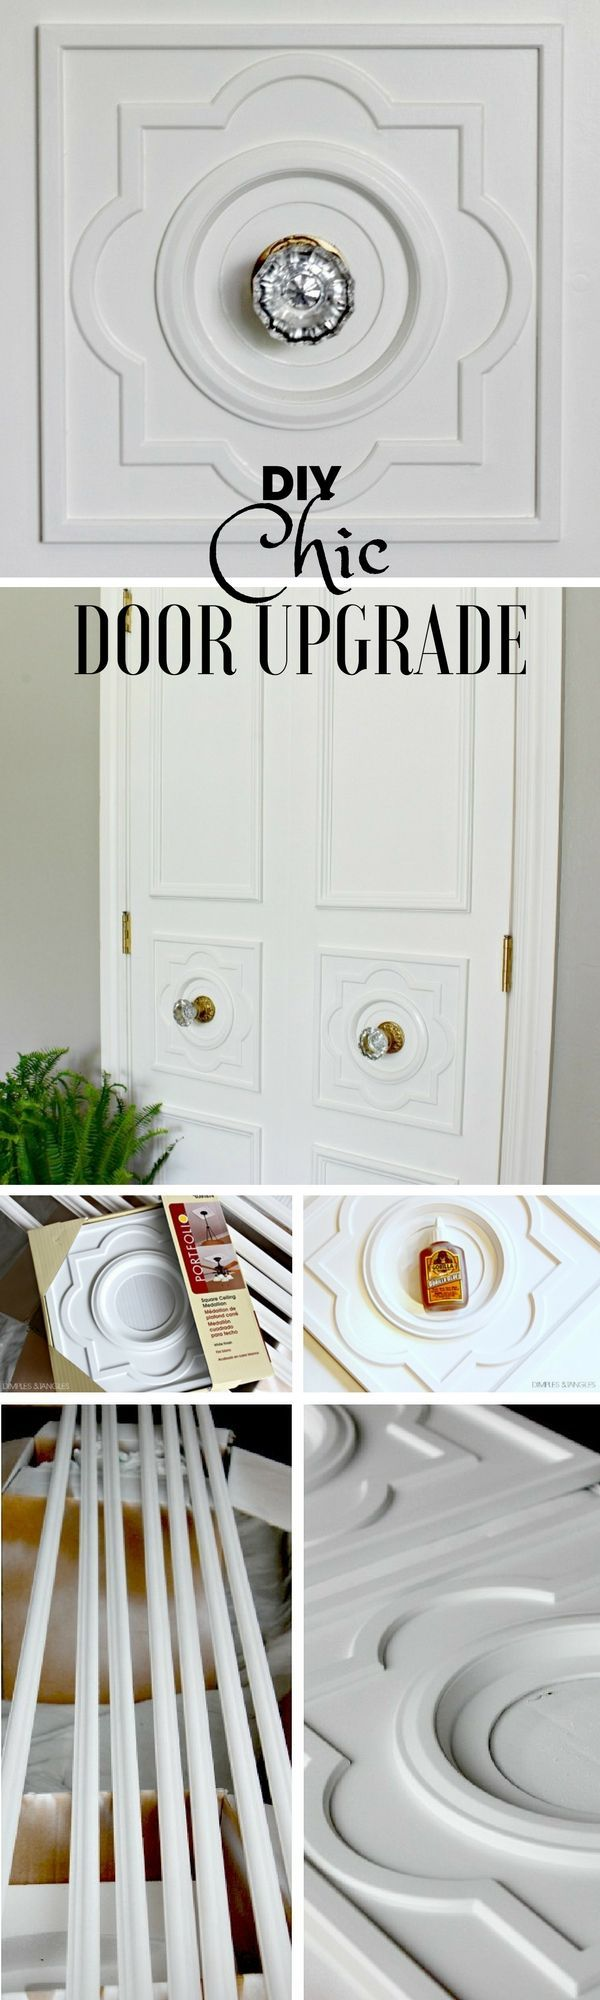 Check out the tutorial: #DIY Chic Door Upgrade @istandarddesign